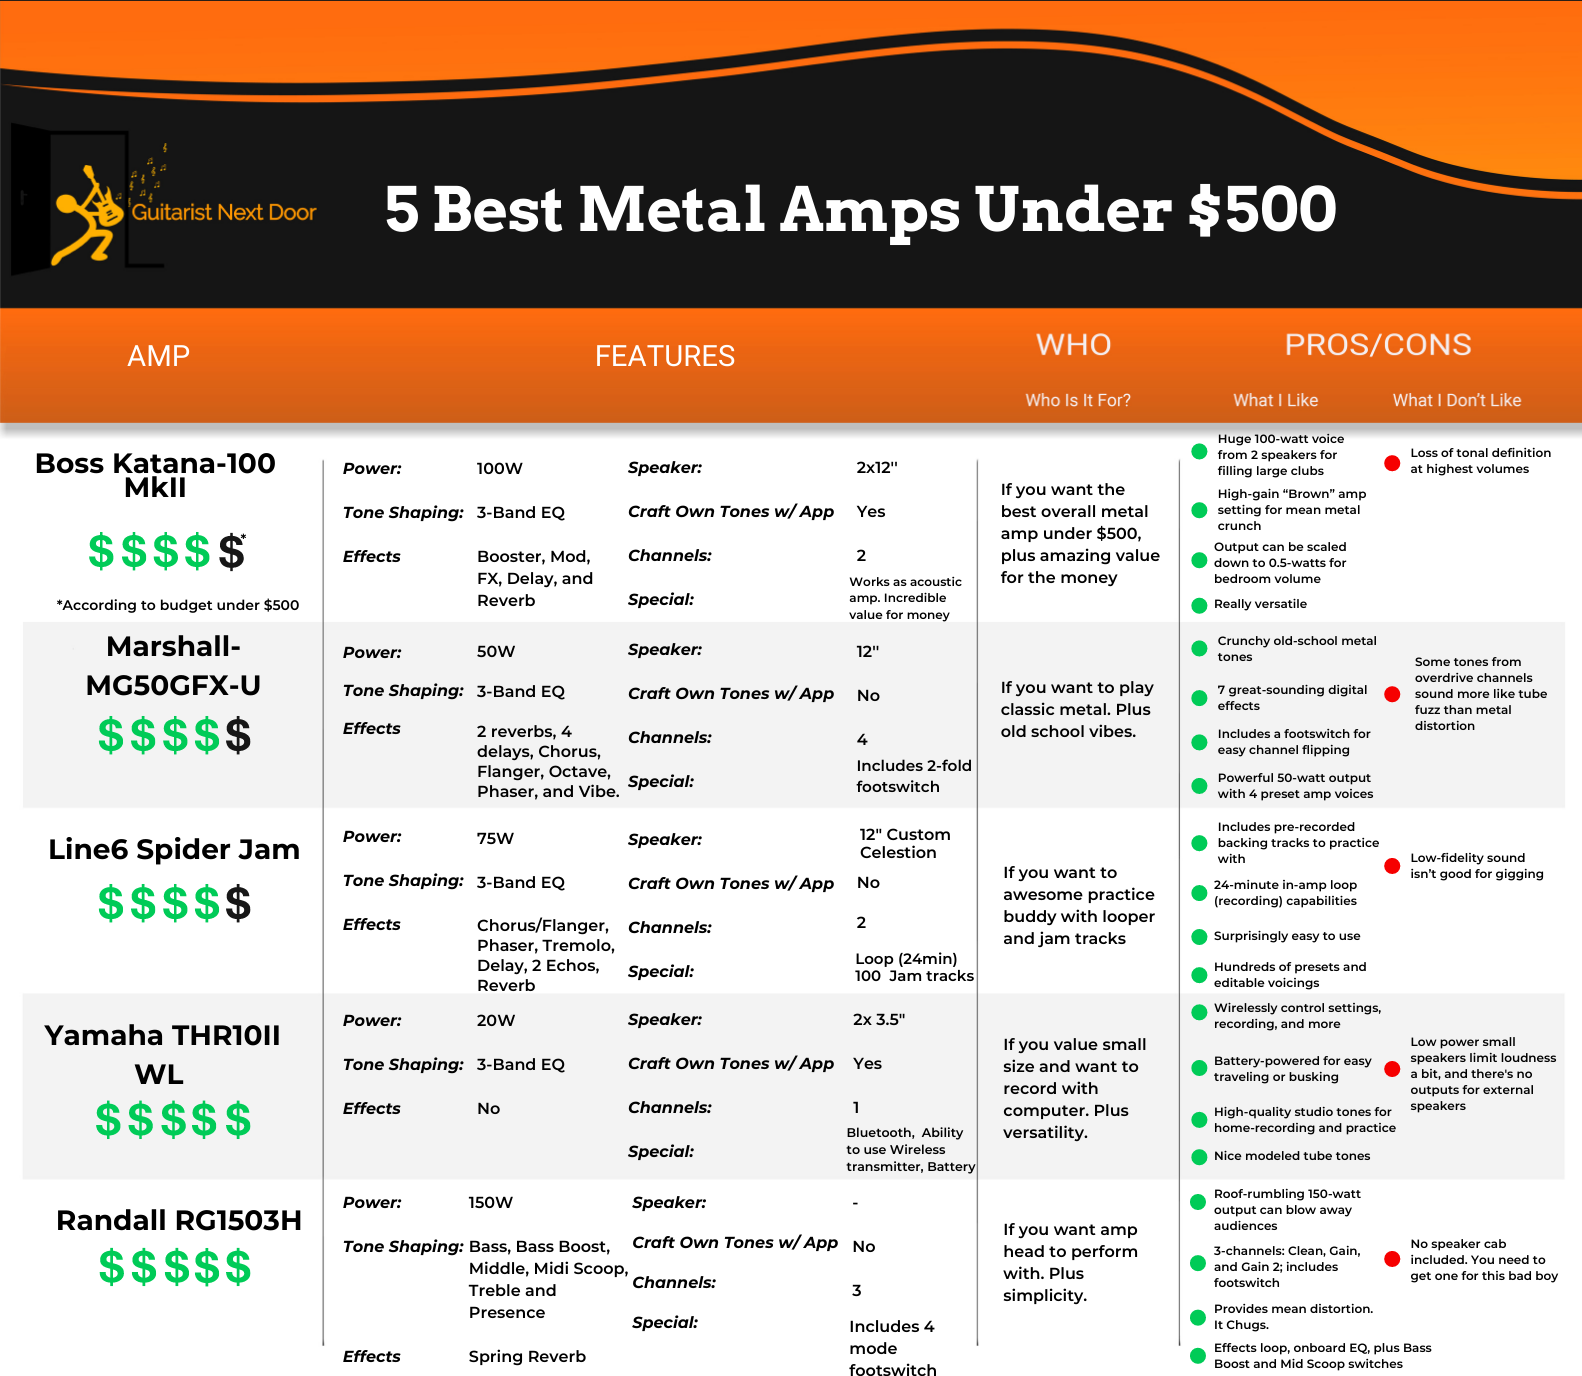 graph helps visitors to compare Best Metal Amps Under $500